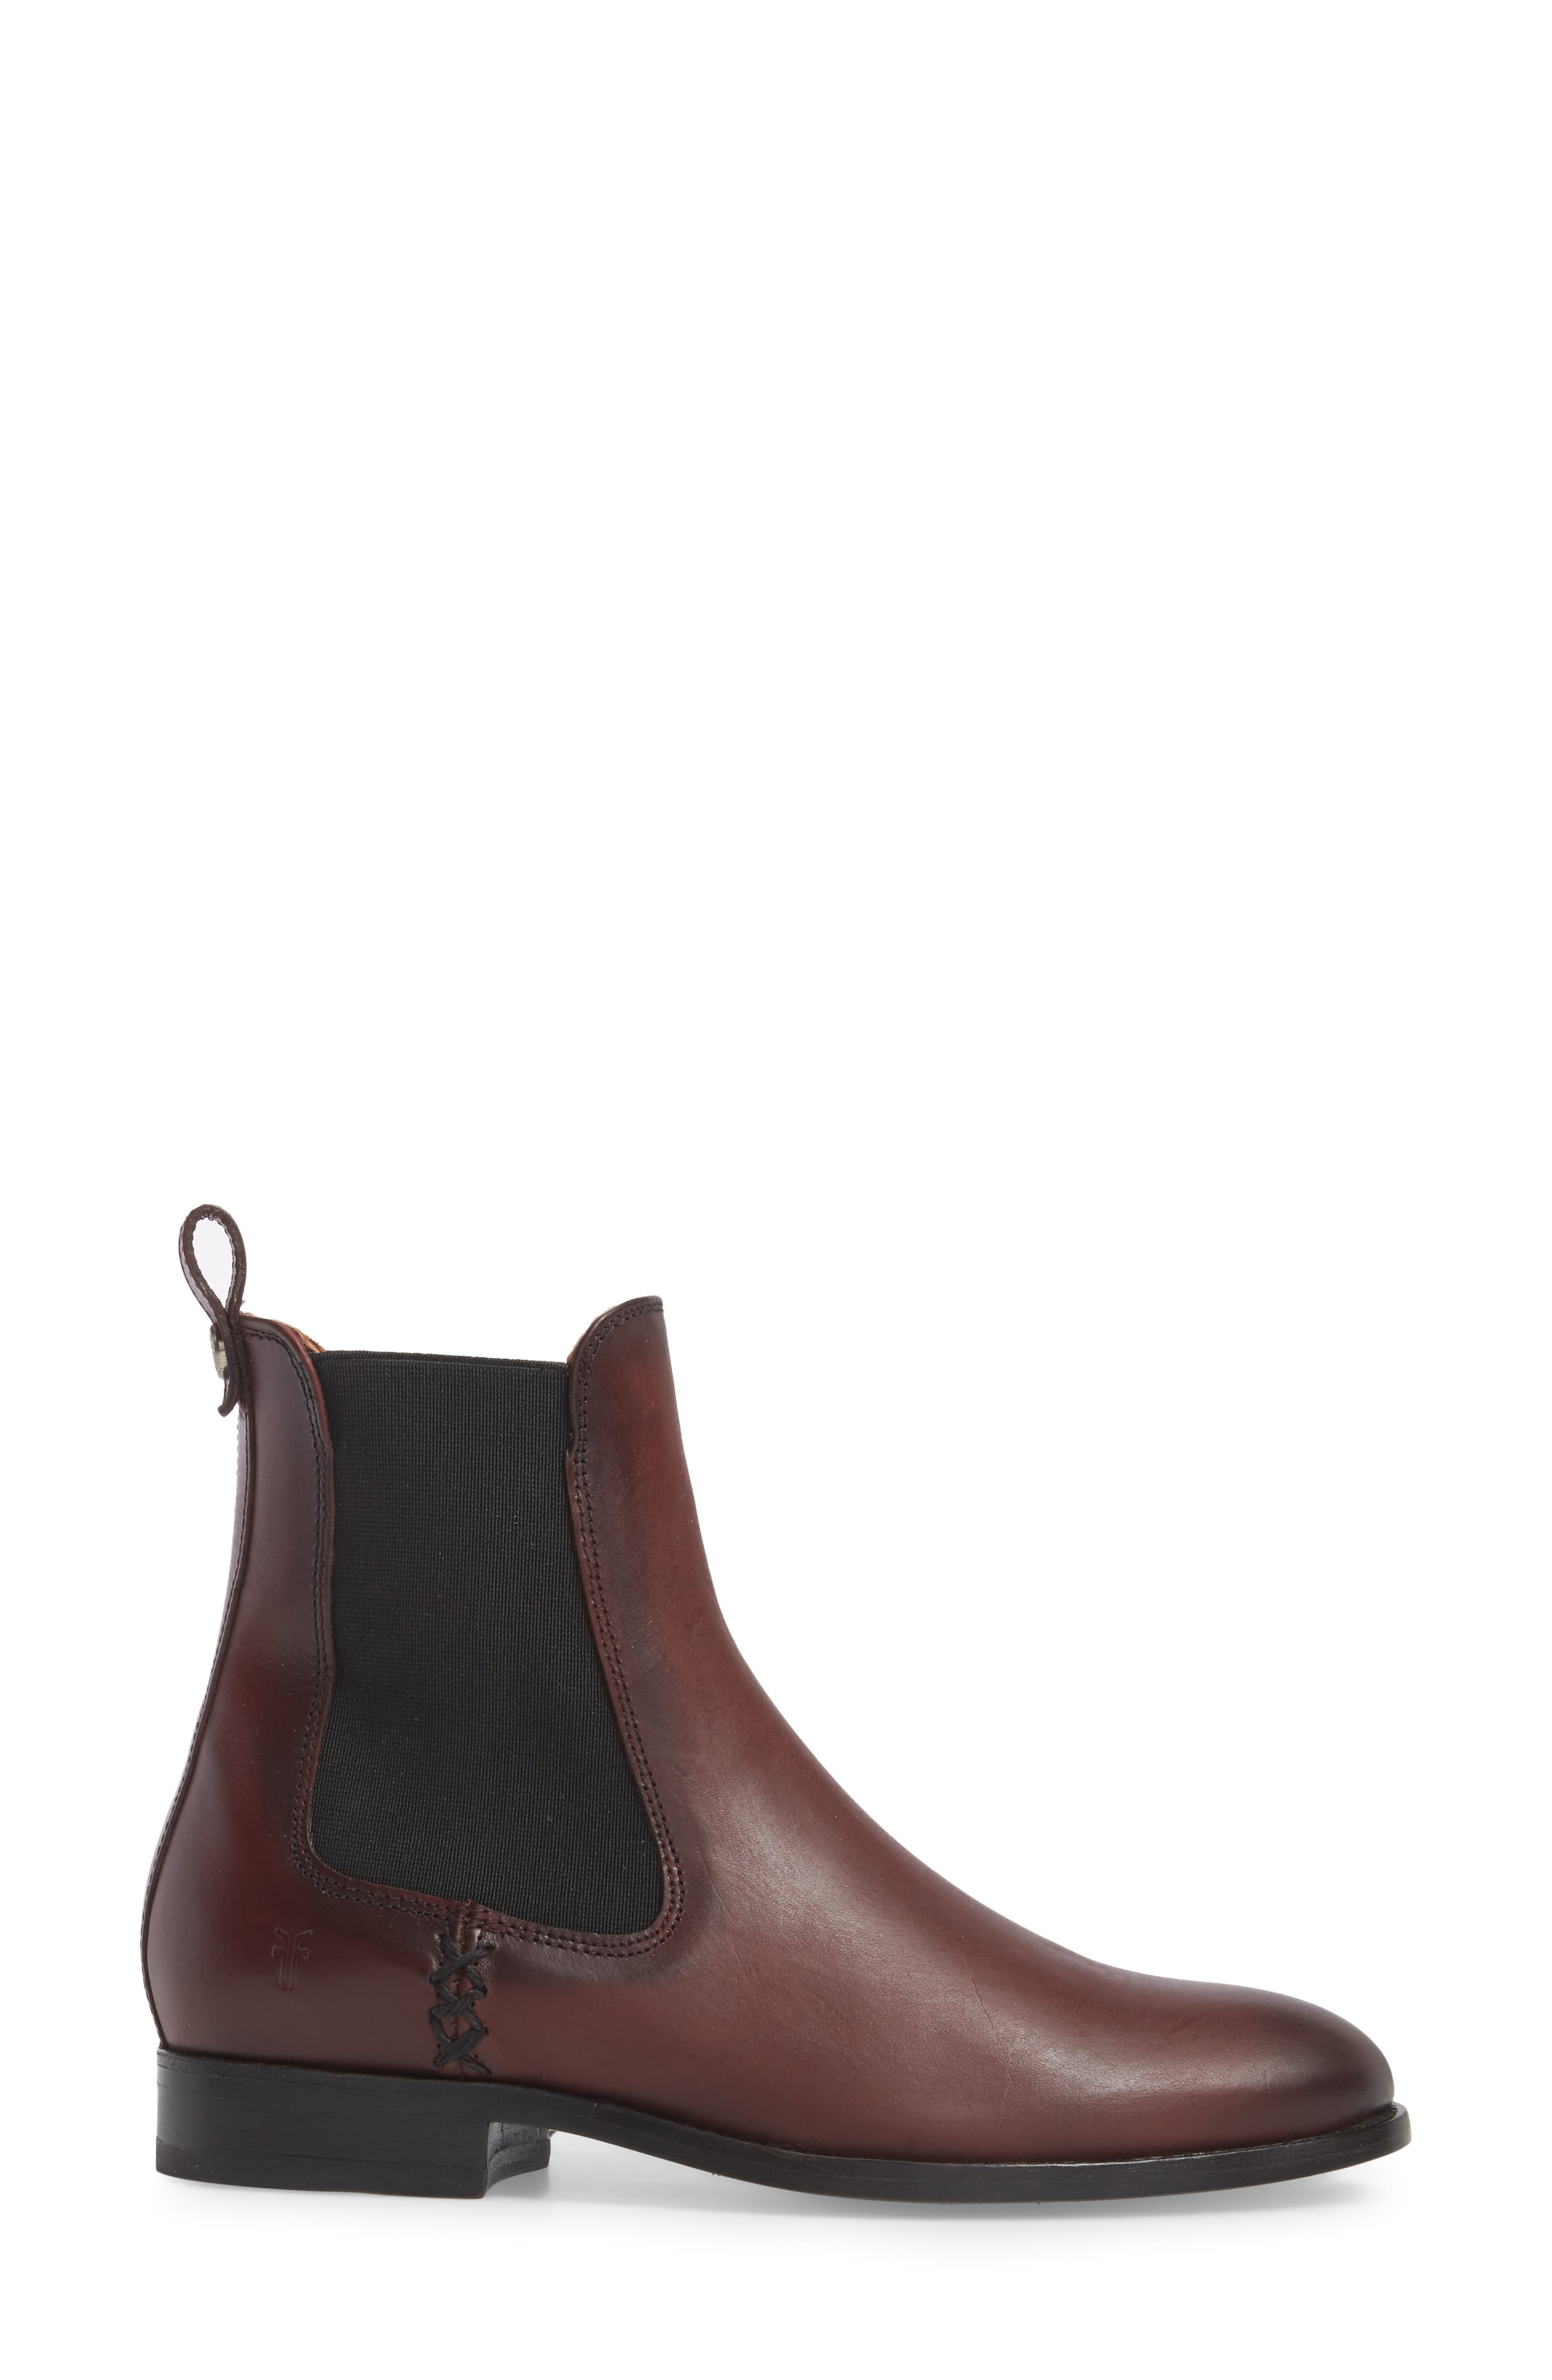 Melissa Chelsea Boot,                             Alternate thumbnail 3, color,                             930